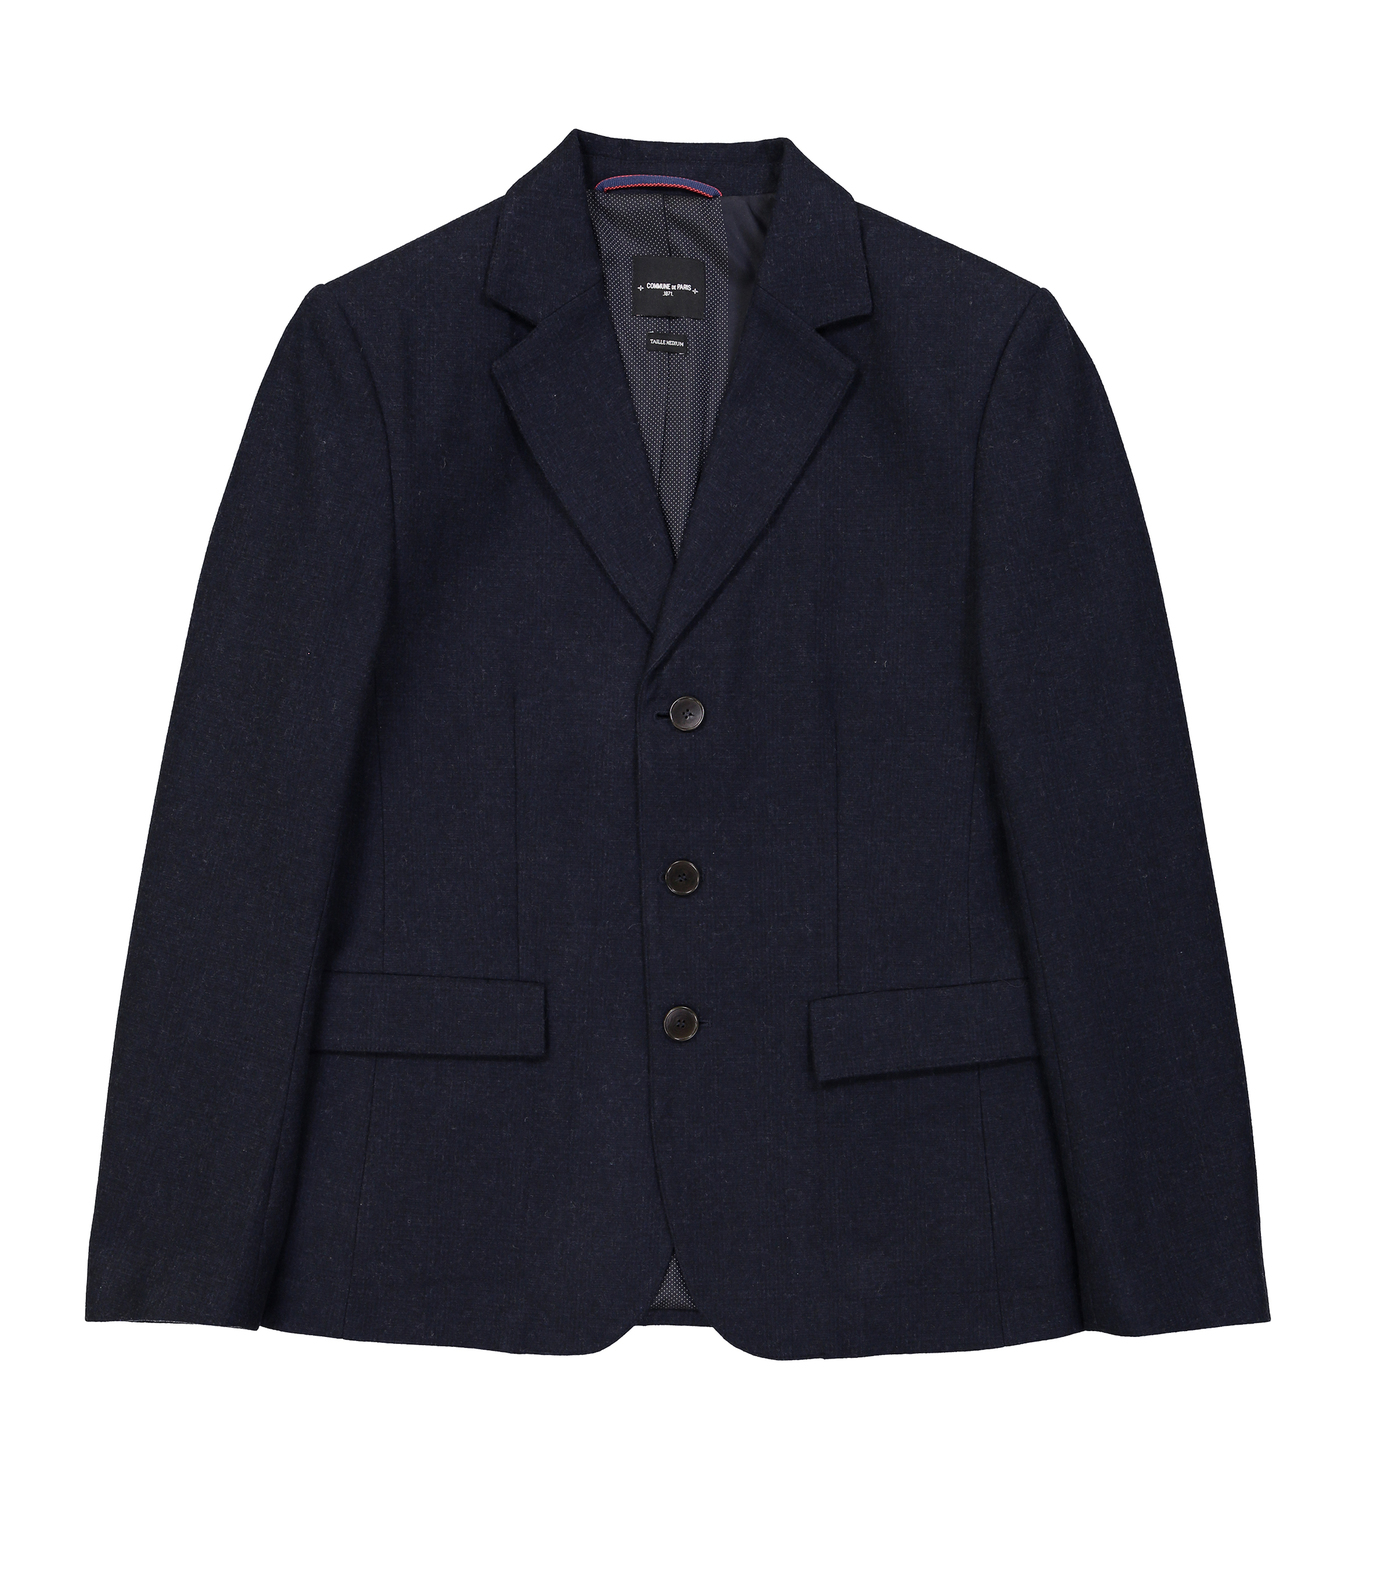 SUIT JACKET PROTOT  - Navy